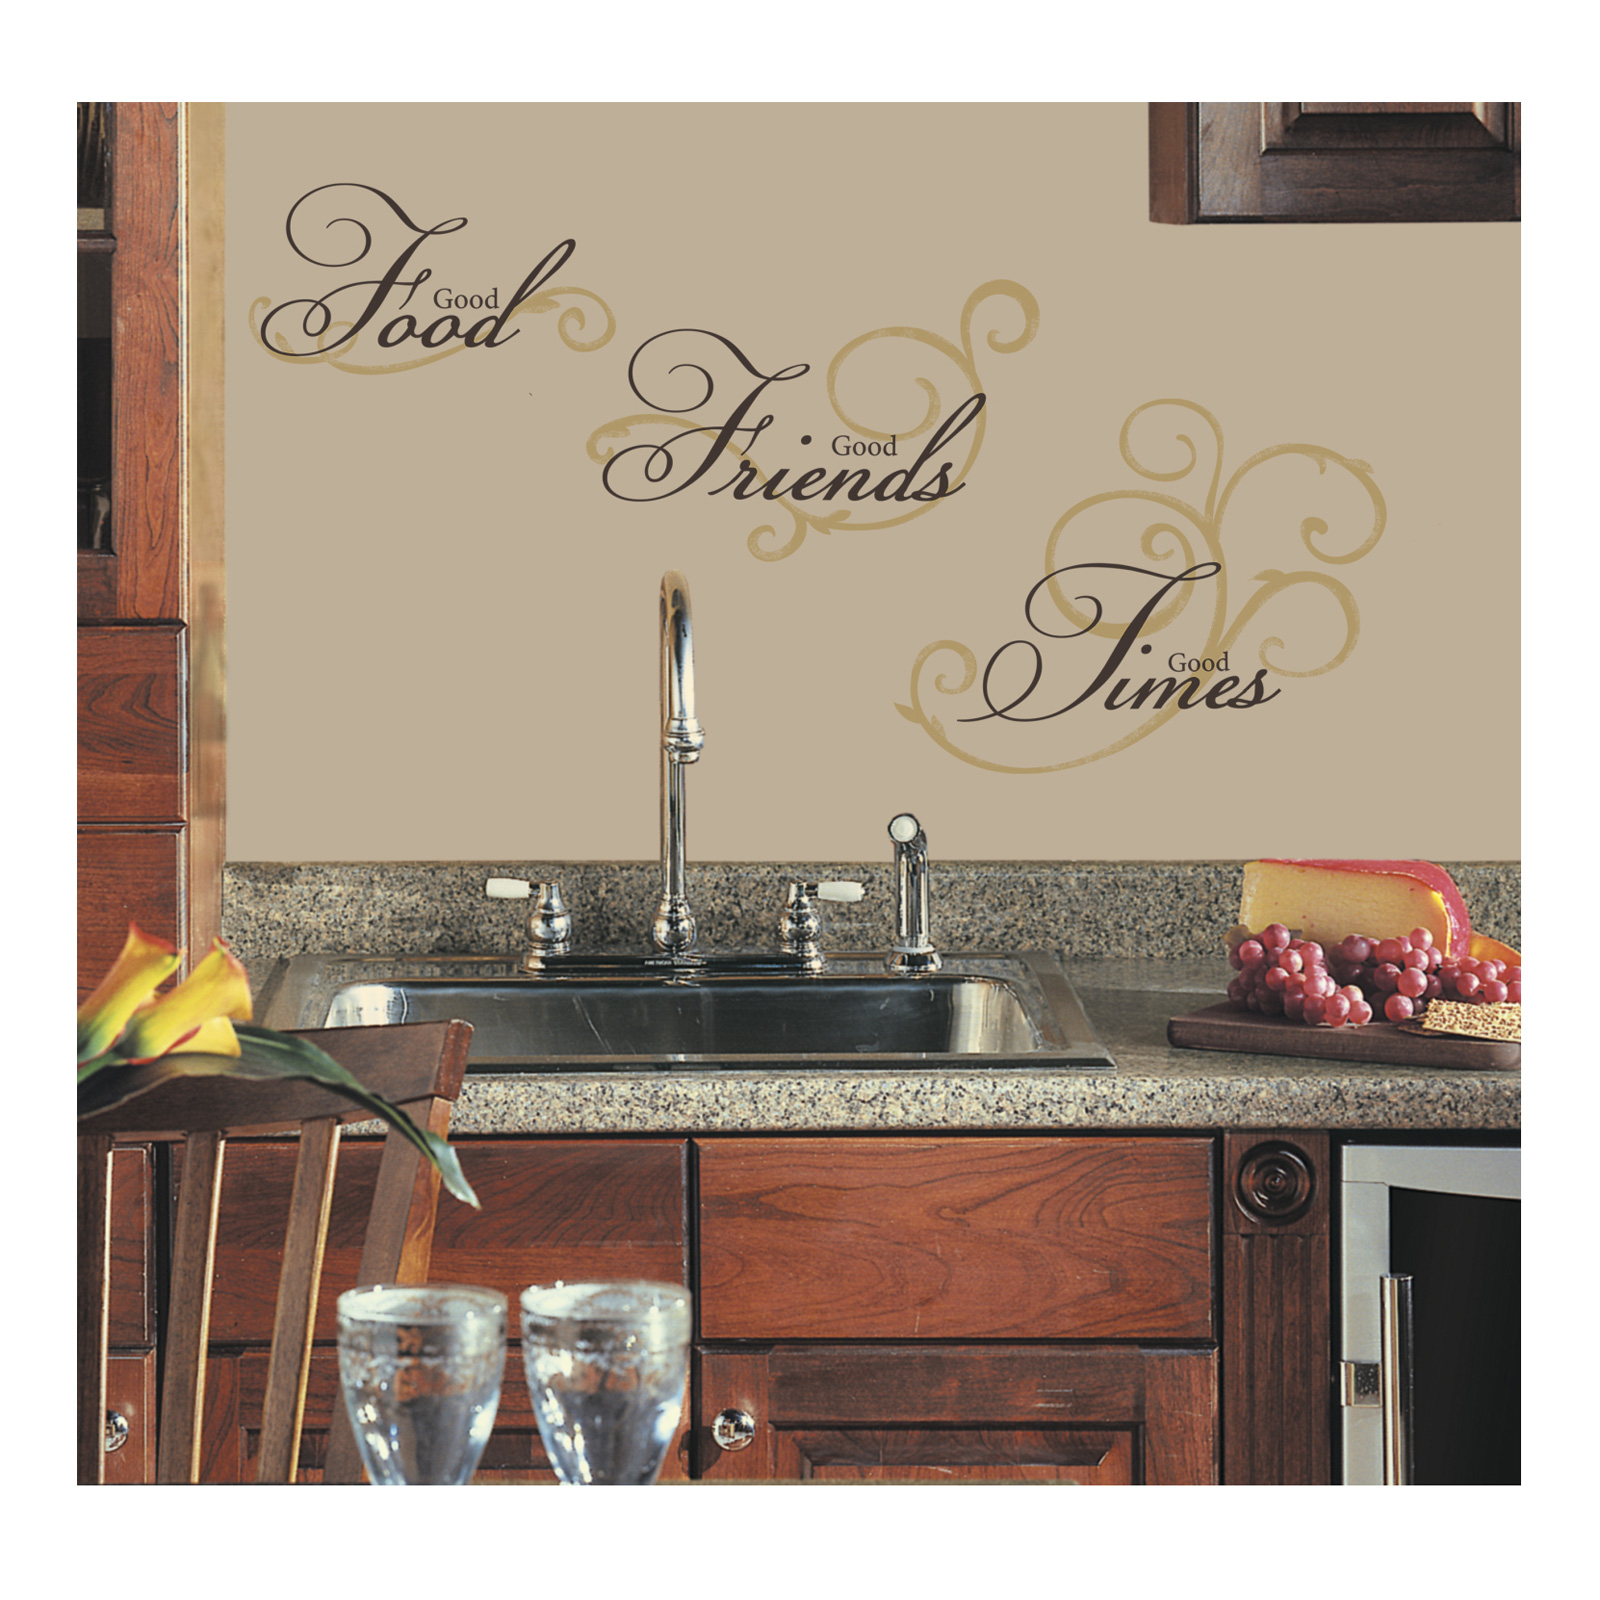 Good FoodFriendsTimes Wall Decal by Stardom Specialty in USA